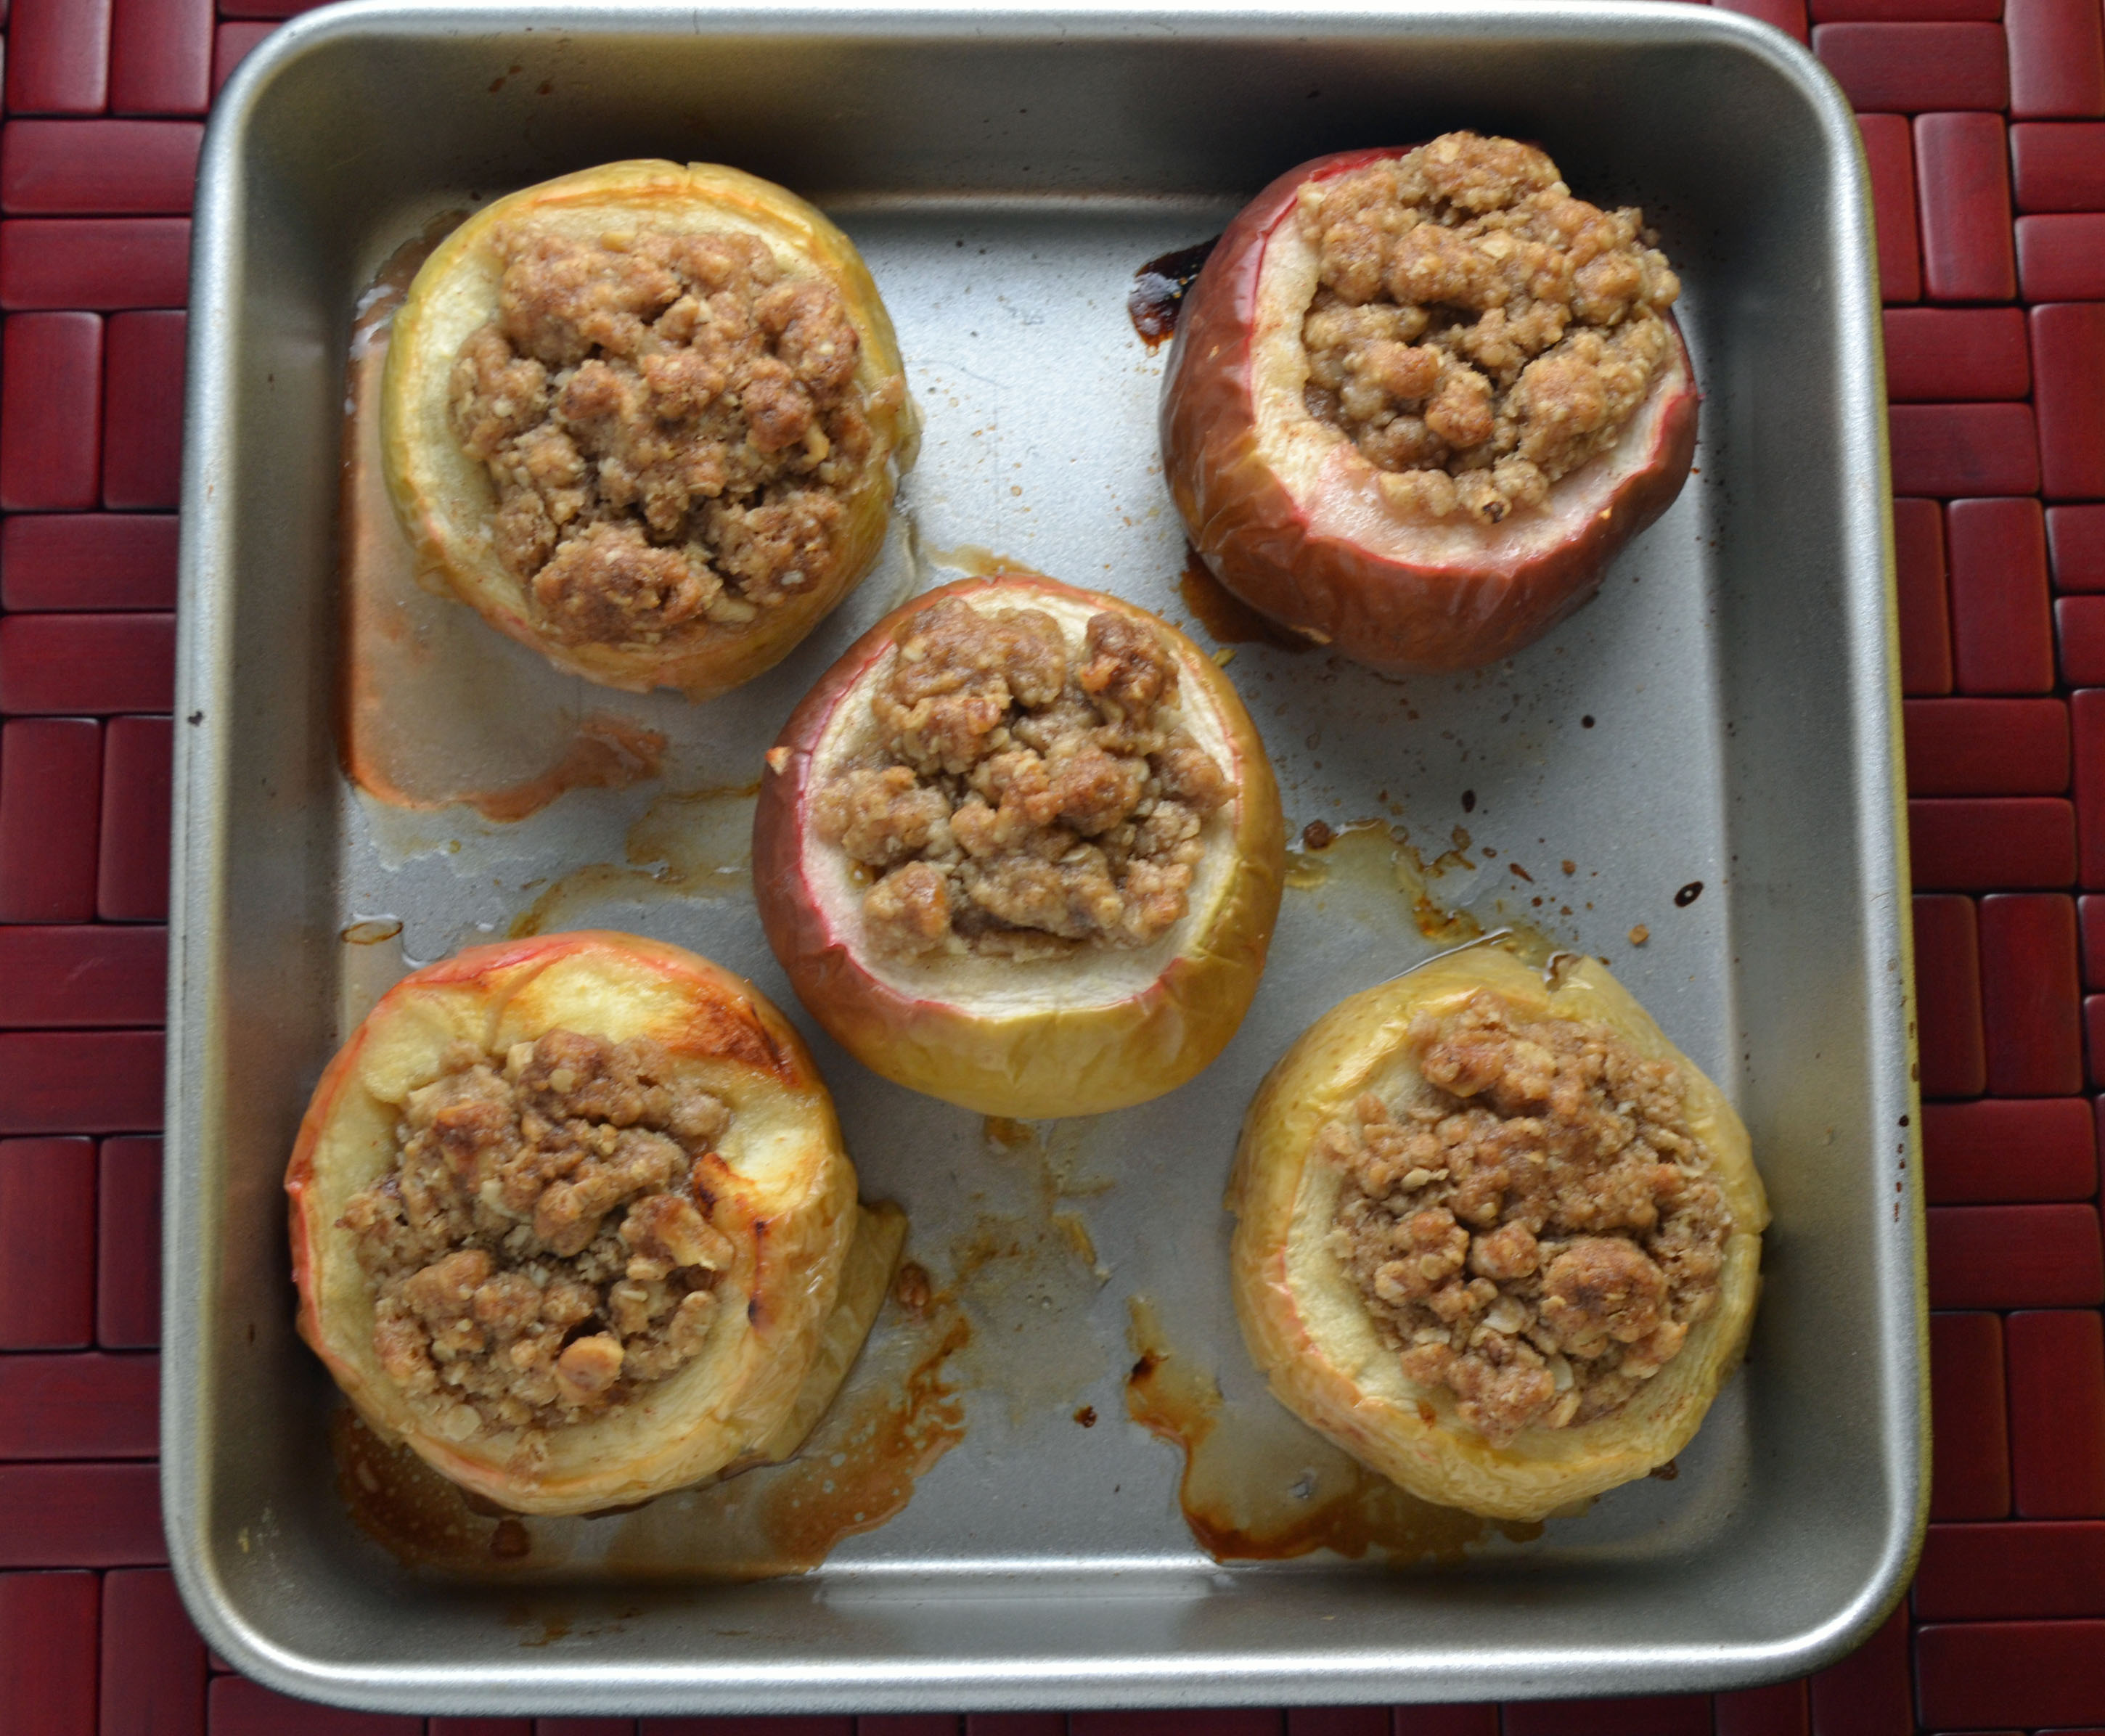 Stuffed Baked Apples with Caramel Sauce - Megan Peck Cooks